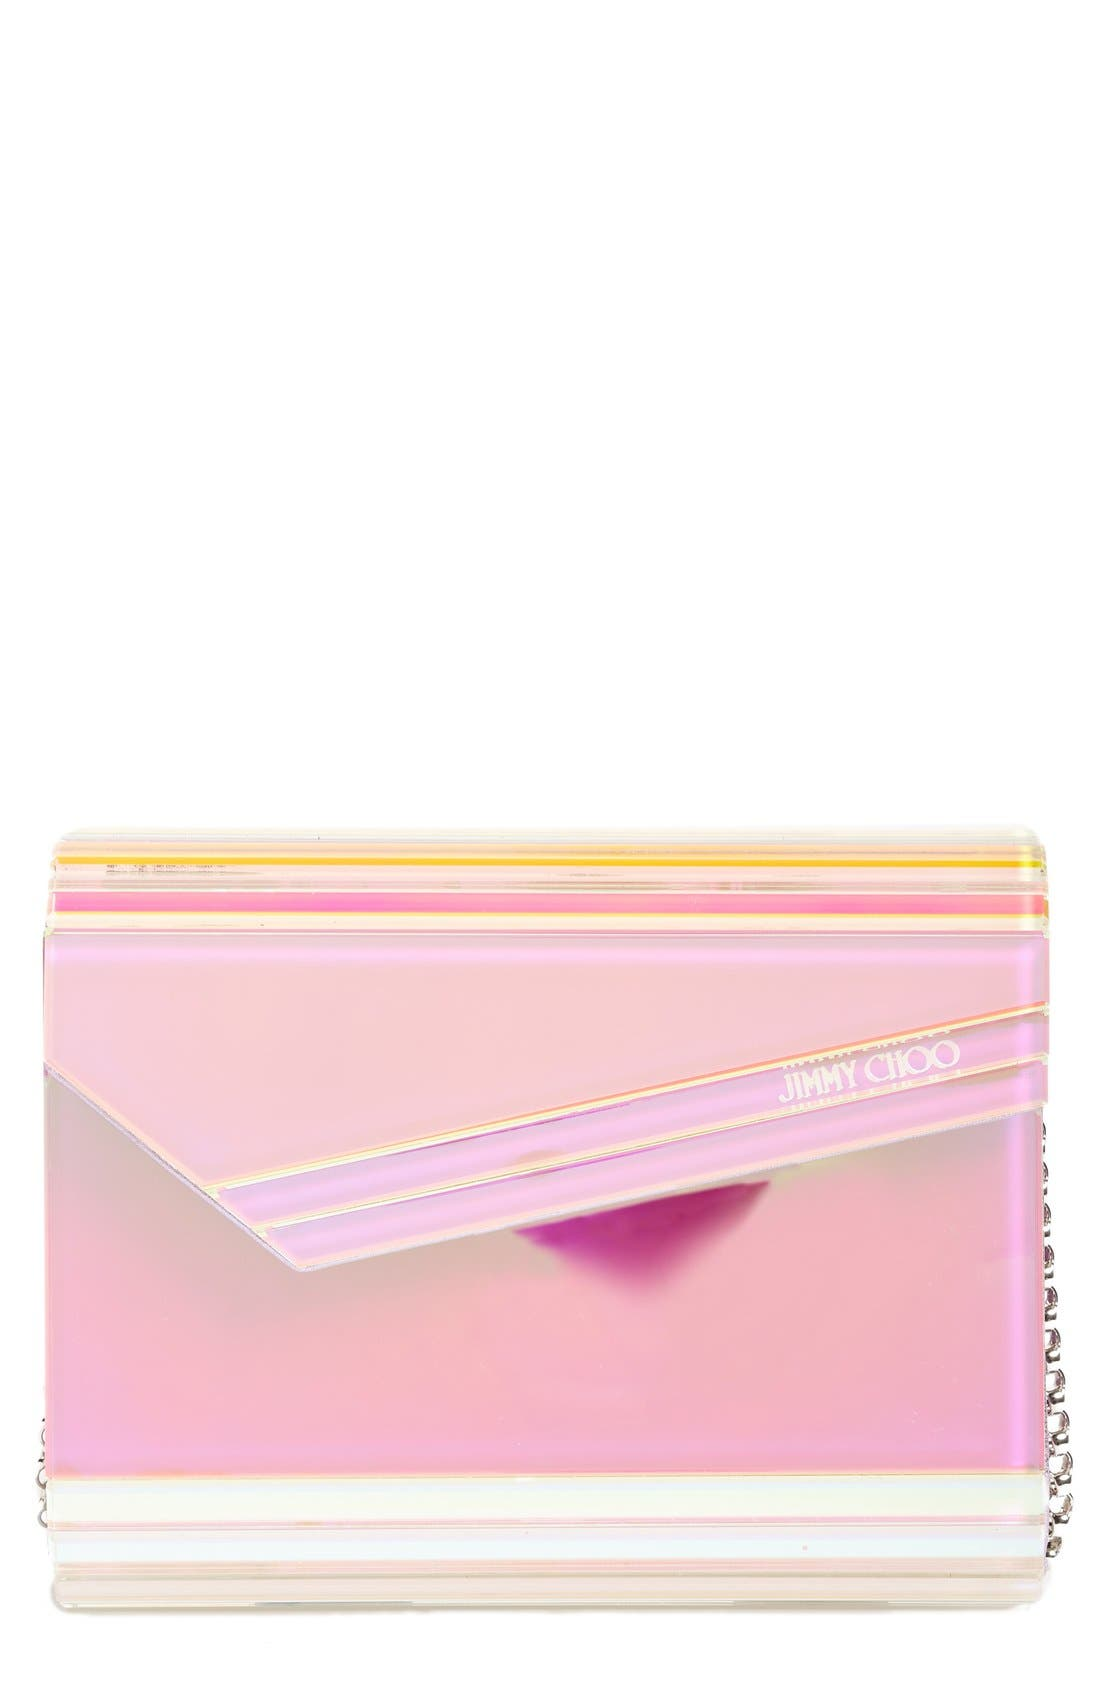 Alternate Image 1 Selected - Jimmy Choo Candy Holographic Clutch